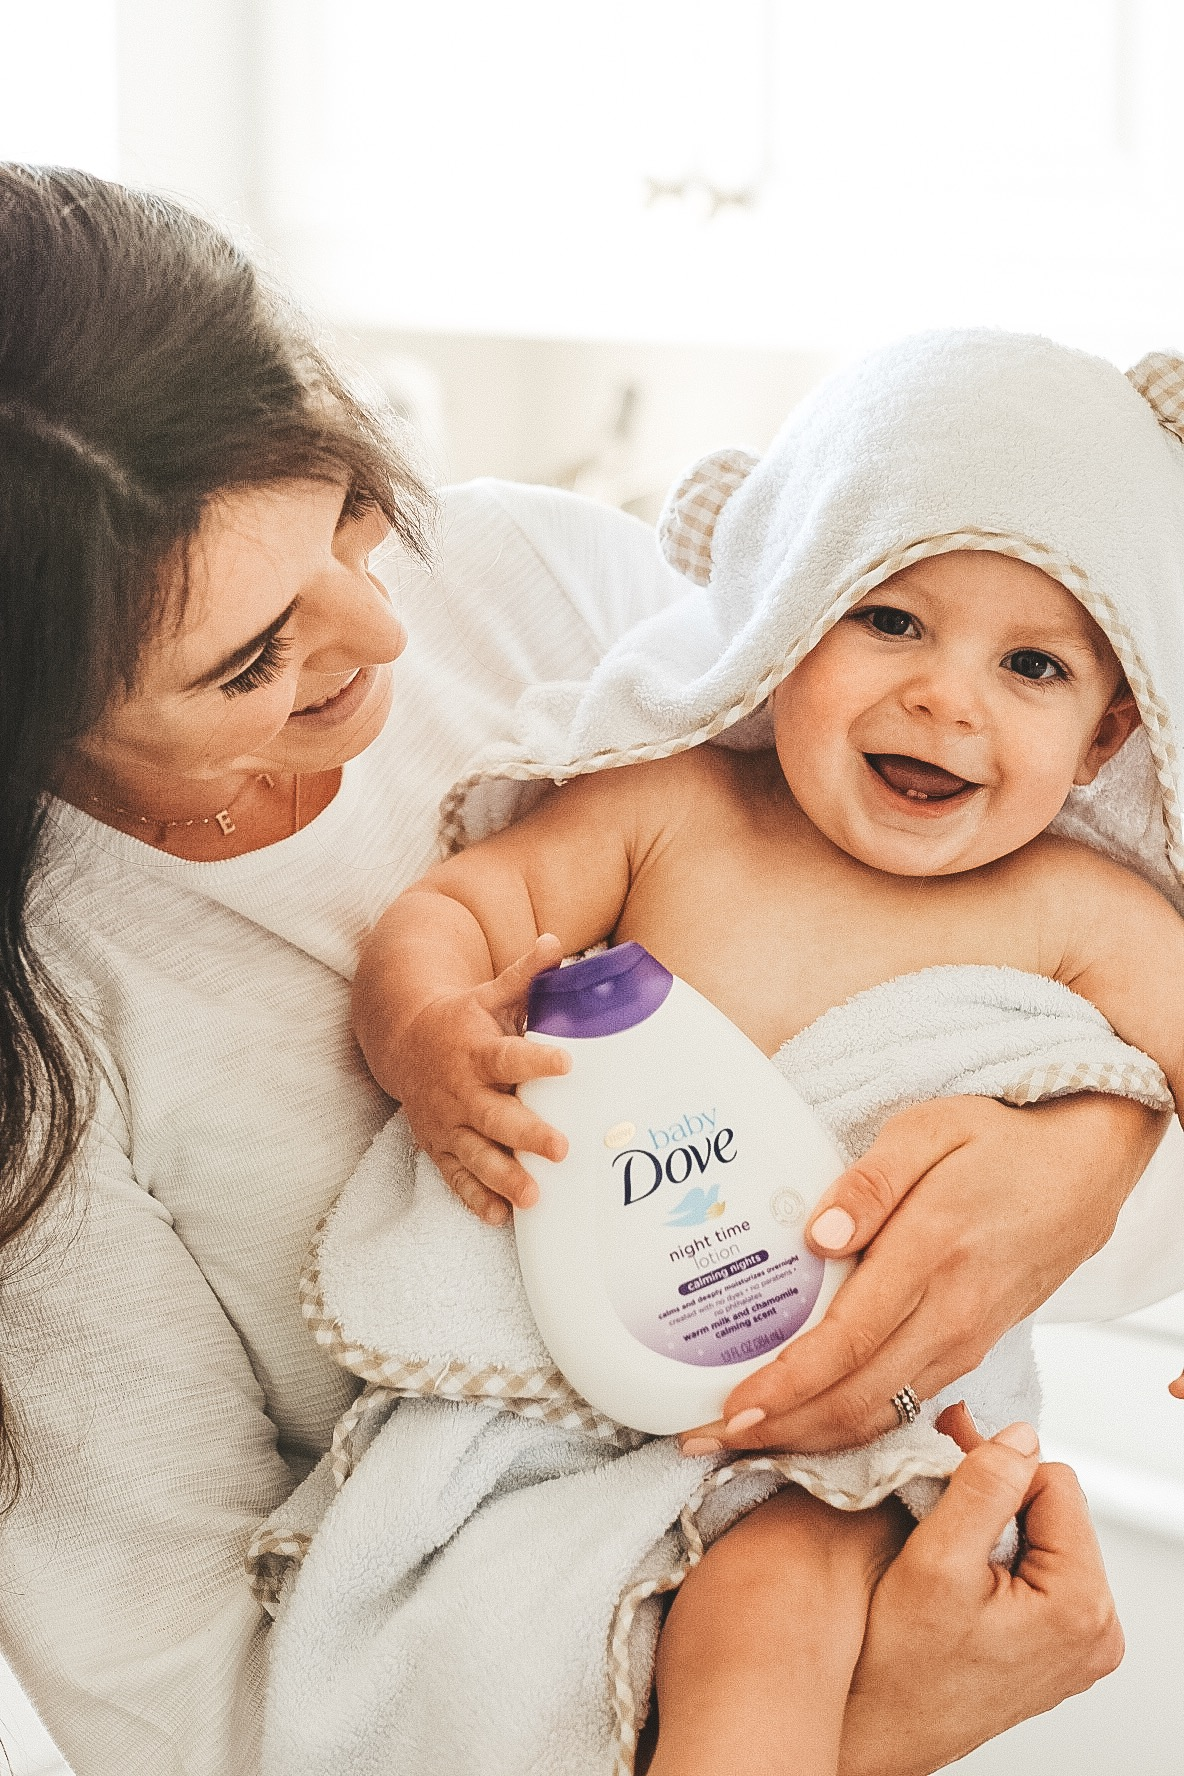 Dove Baby Calming Nights Wash and Lotion.6.jpg